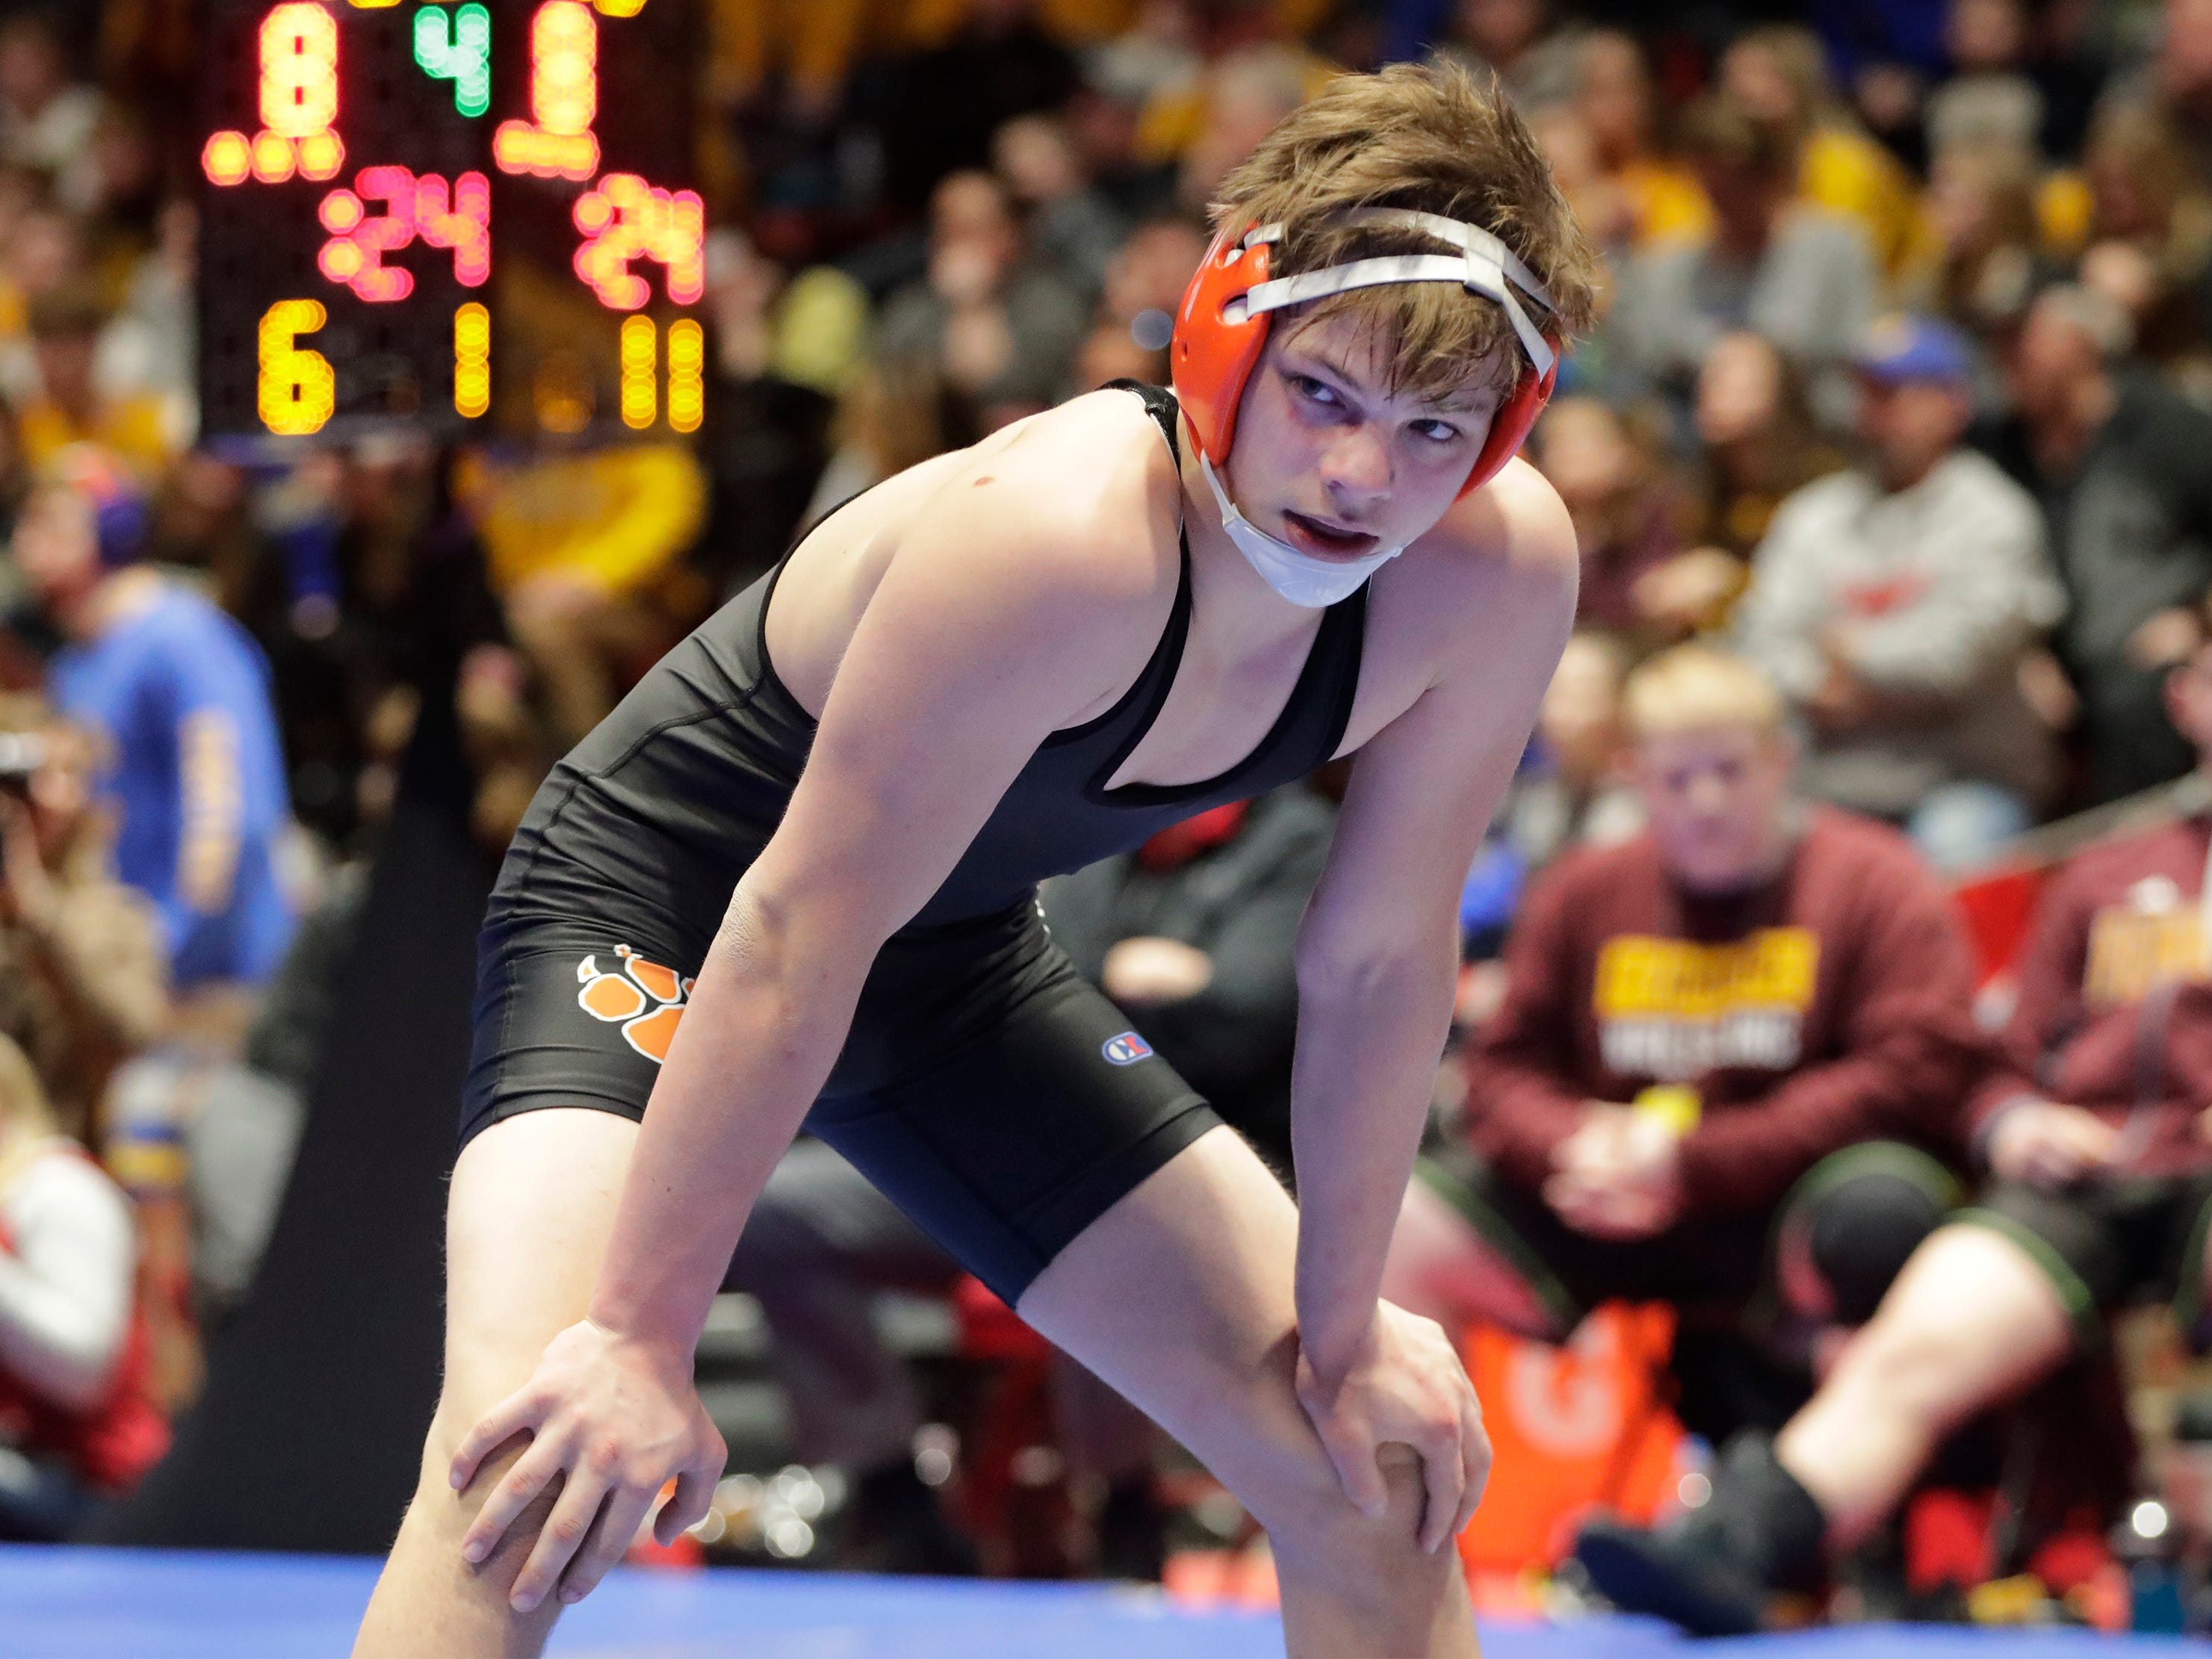 Stratford's Jacob Heiden, waits during a pause in action with Fennimore's Aiden Nutter in the 138-pound class, Saturday, March 2, 2019, in Madison, Wis.